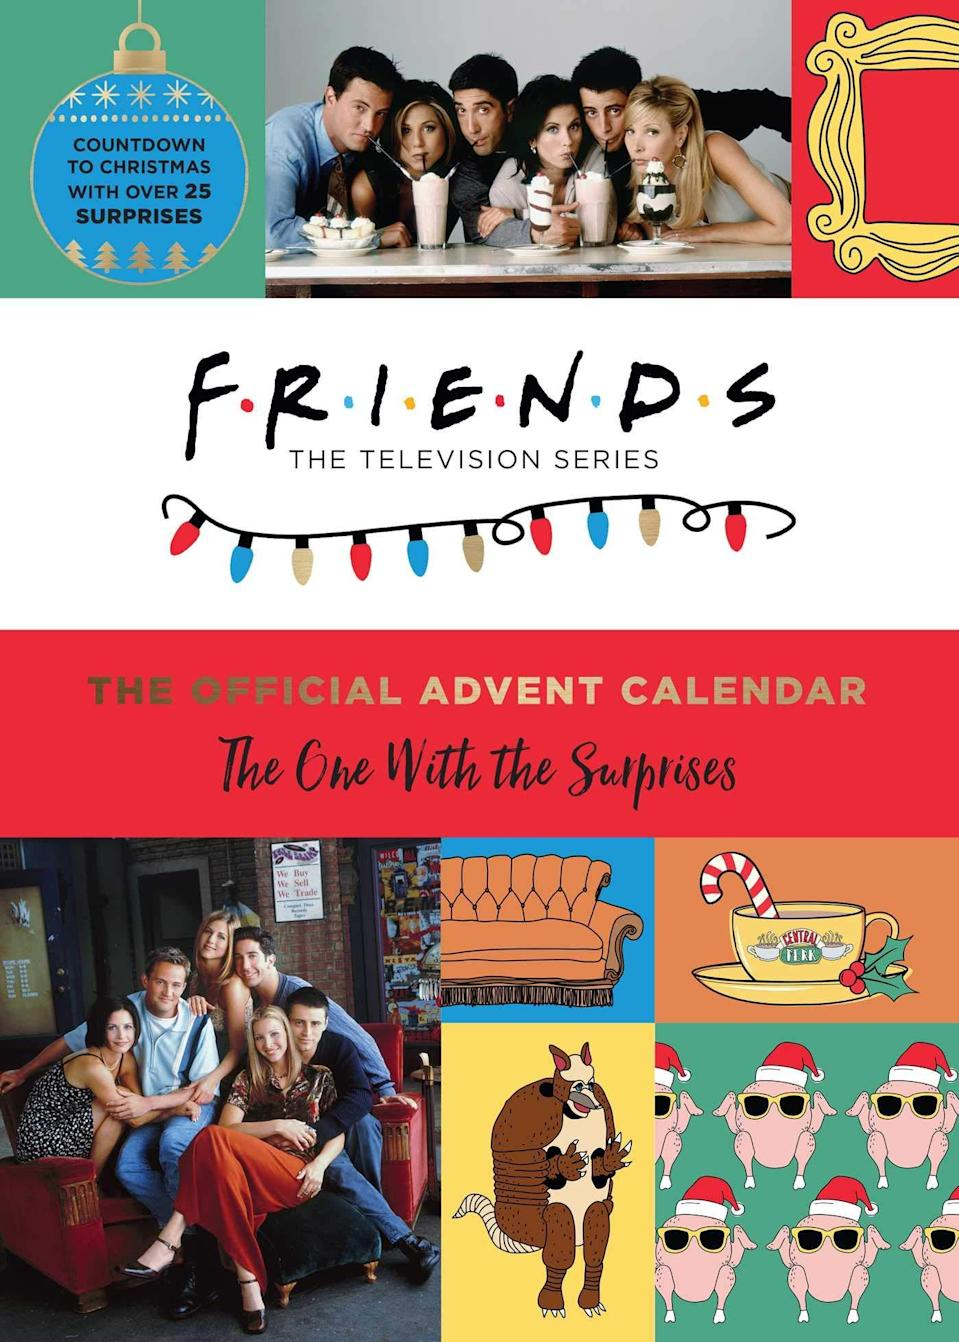 """<h2>Friends: The Official Advent Calendar<br></h2><br>The sure-to-be-runaway success of this gift needs no introductions — and, as an advent calendar, it's one that will keep on giving for all season long.<br><br><strong>Insight Editions</strong> Friends: The Official Advent Calendar, $, available at <a href=""""https://www.amazon.com/Friends-Official-Advent-Calendar-Surprises/dp/1647222613"""" rel=""""nofollow noopener"""" target=""""_blank"""" data-ylk=""""slk:Amazon"""" class=""""link rapid-noclick-resp"""">Amazon</a>"""